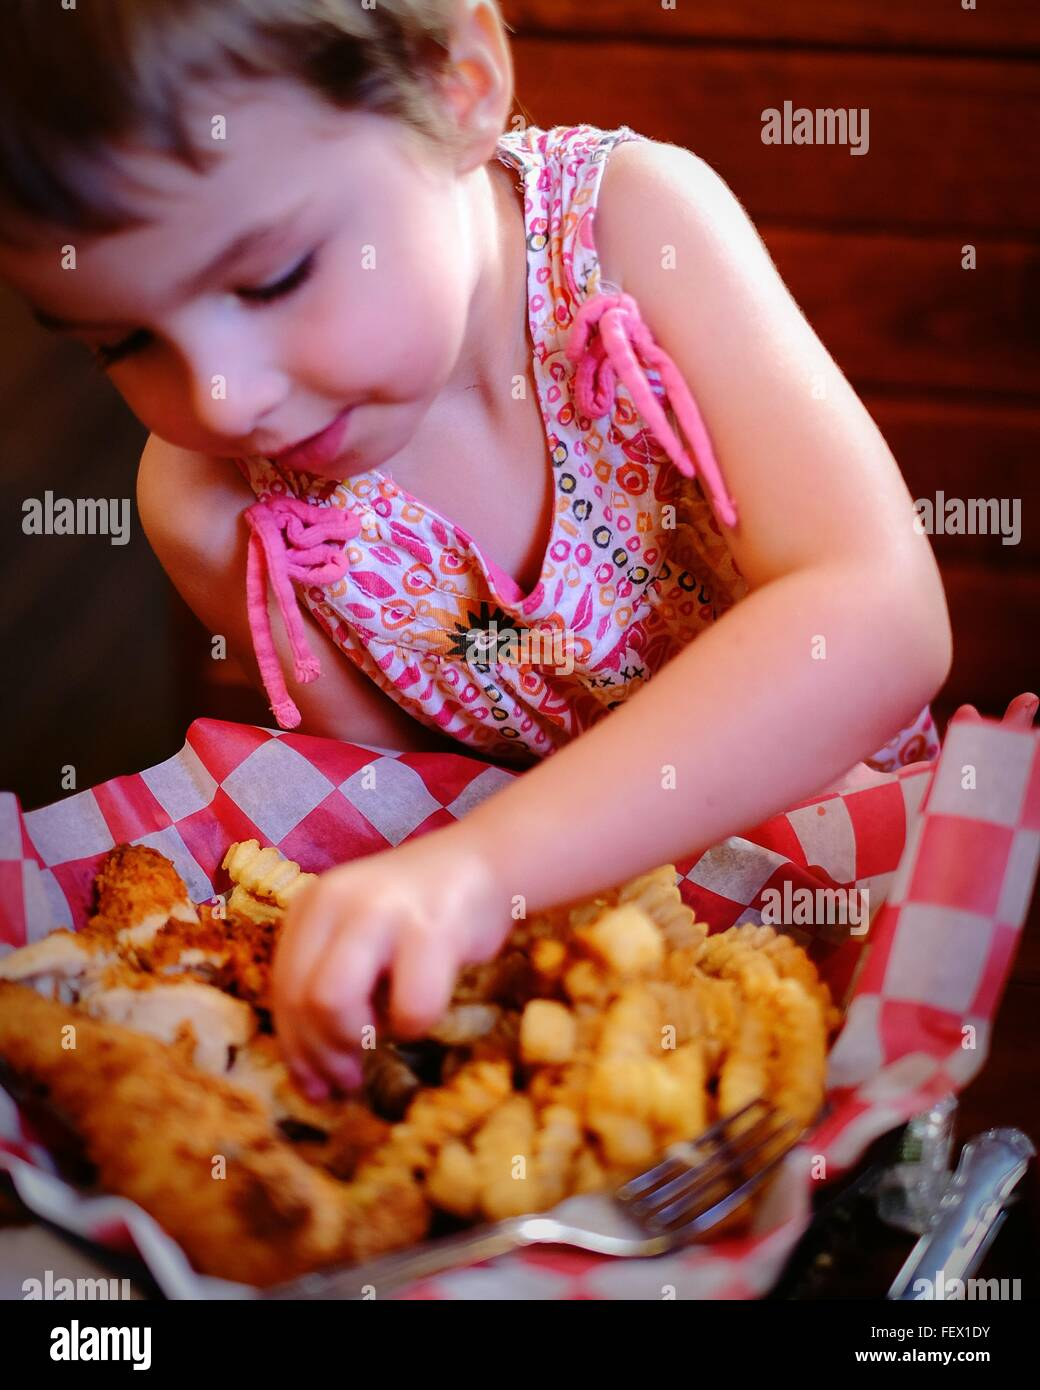 Cute Girl Having Chicken Fingers At Restaurant - Stock Image